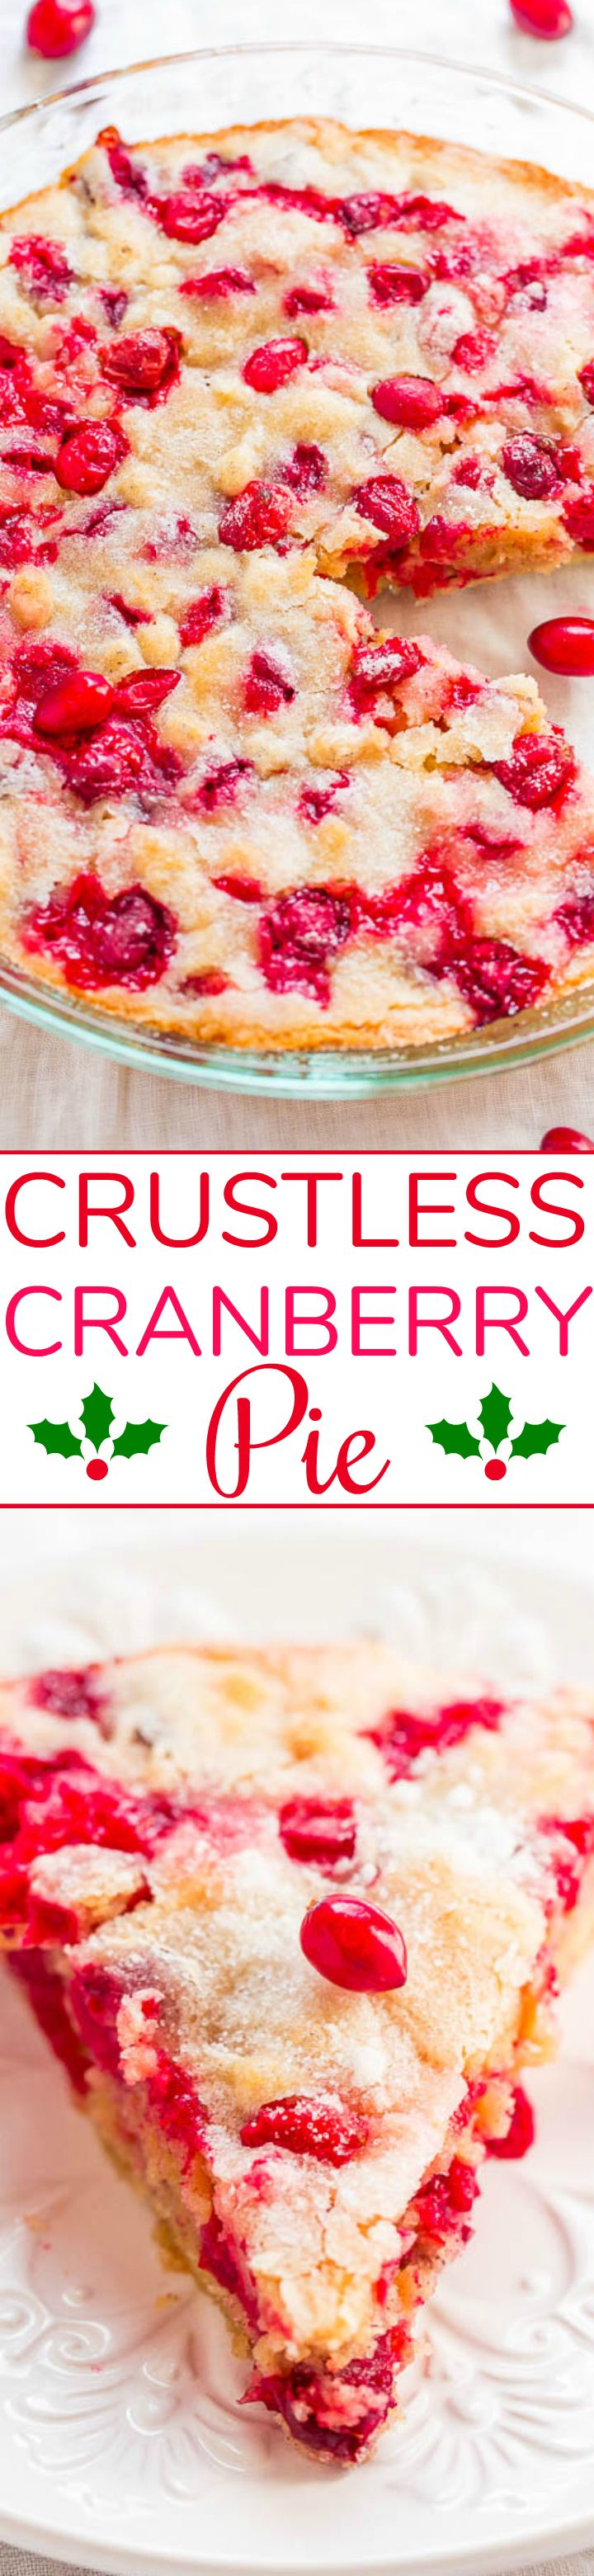 Crustless Cranberry Pie - FAST, super EASY, no-mixer dessert that's perfect for holiday entertaining!! Somewhere in between pie, cake, and blondies is what you get with this FESTIVE recipe! Take advantage of those fresh cranberries!!